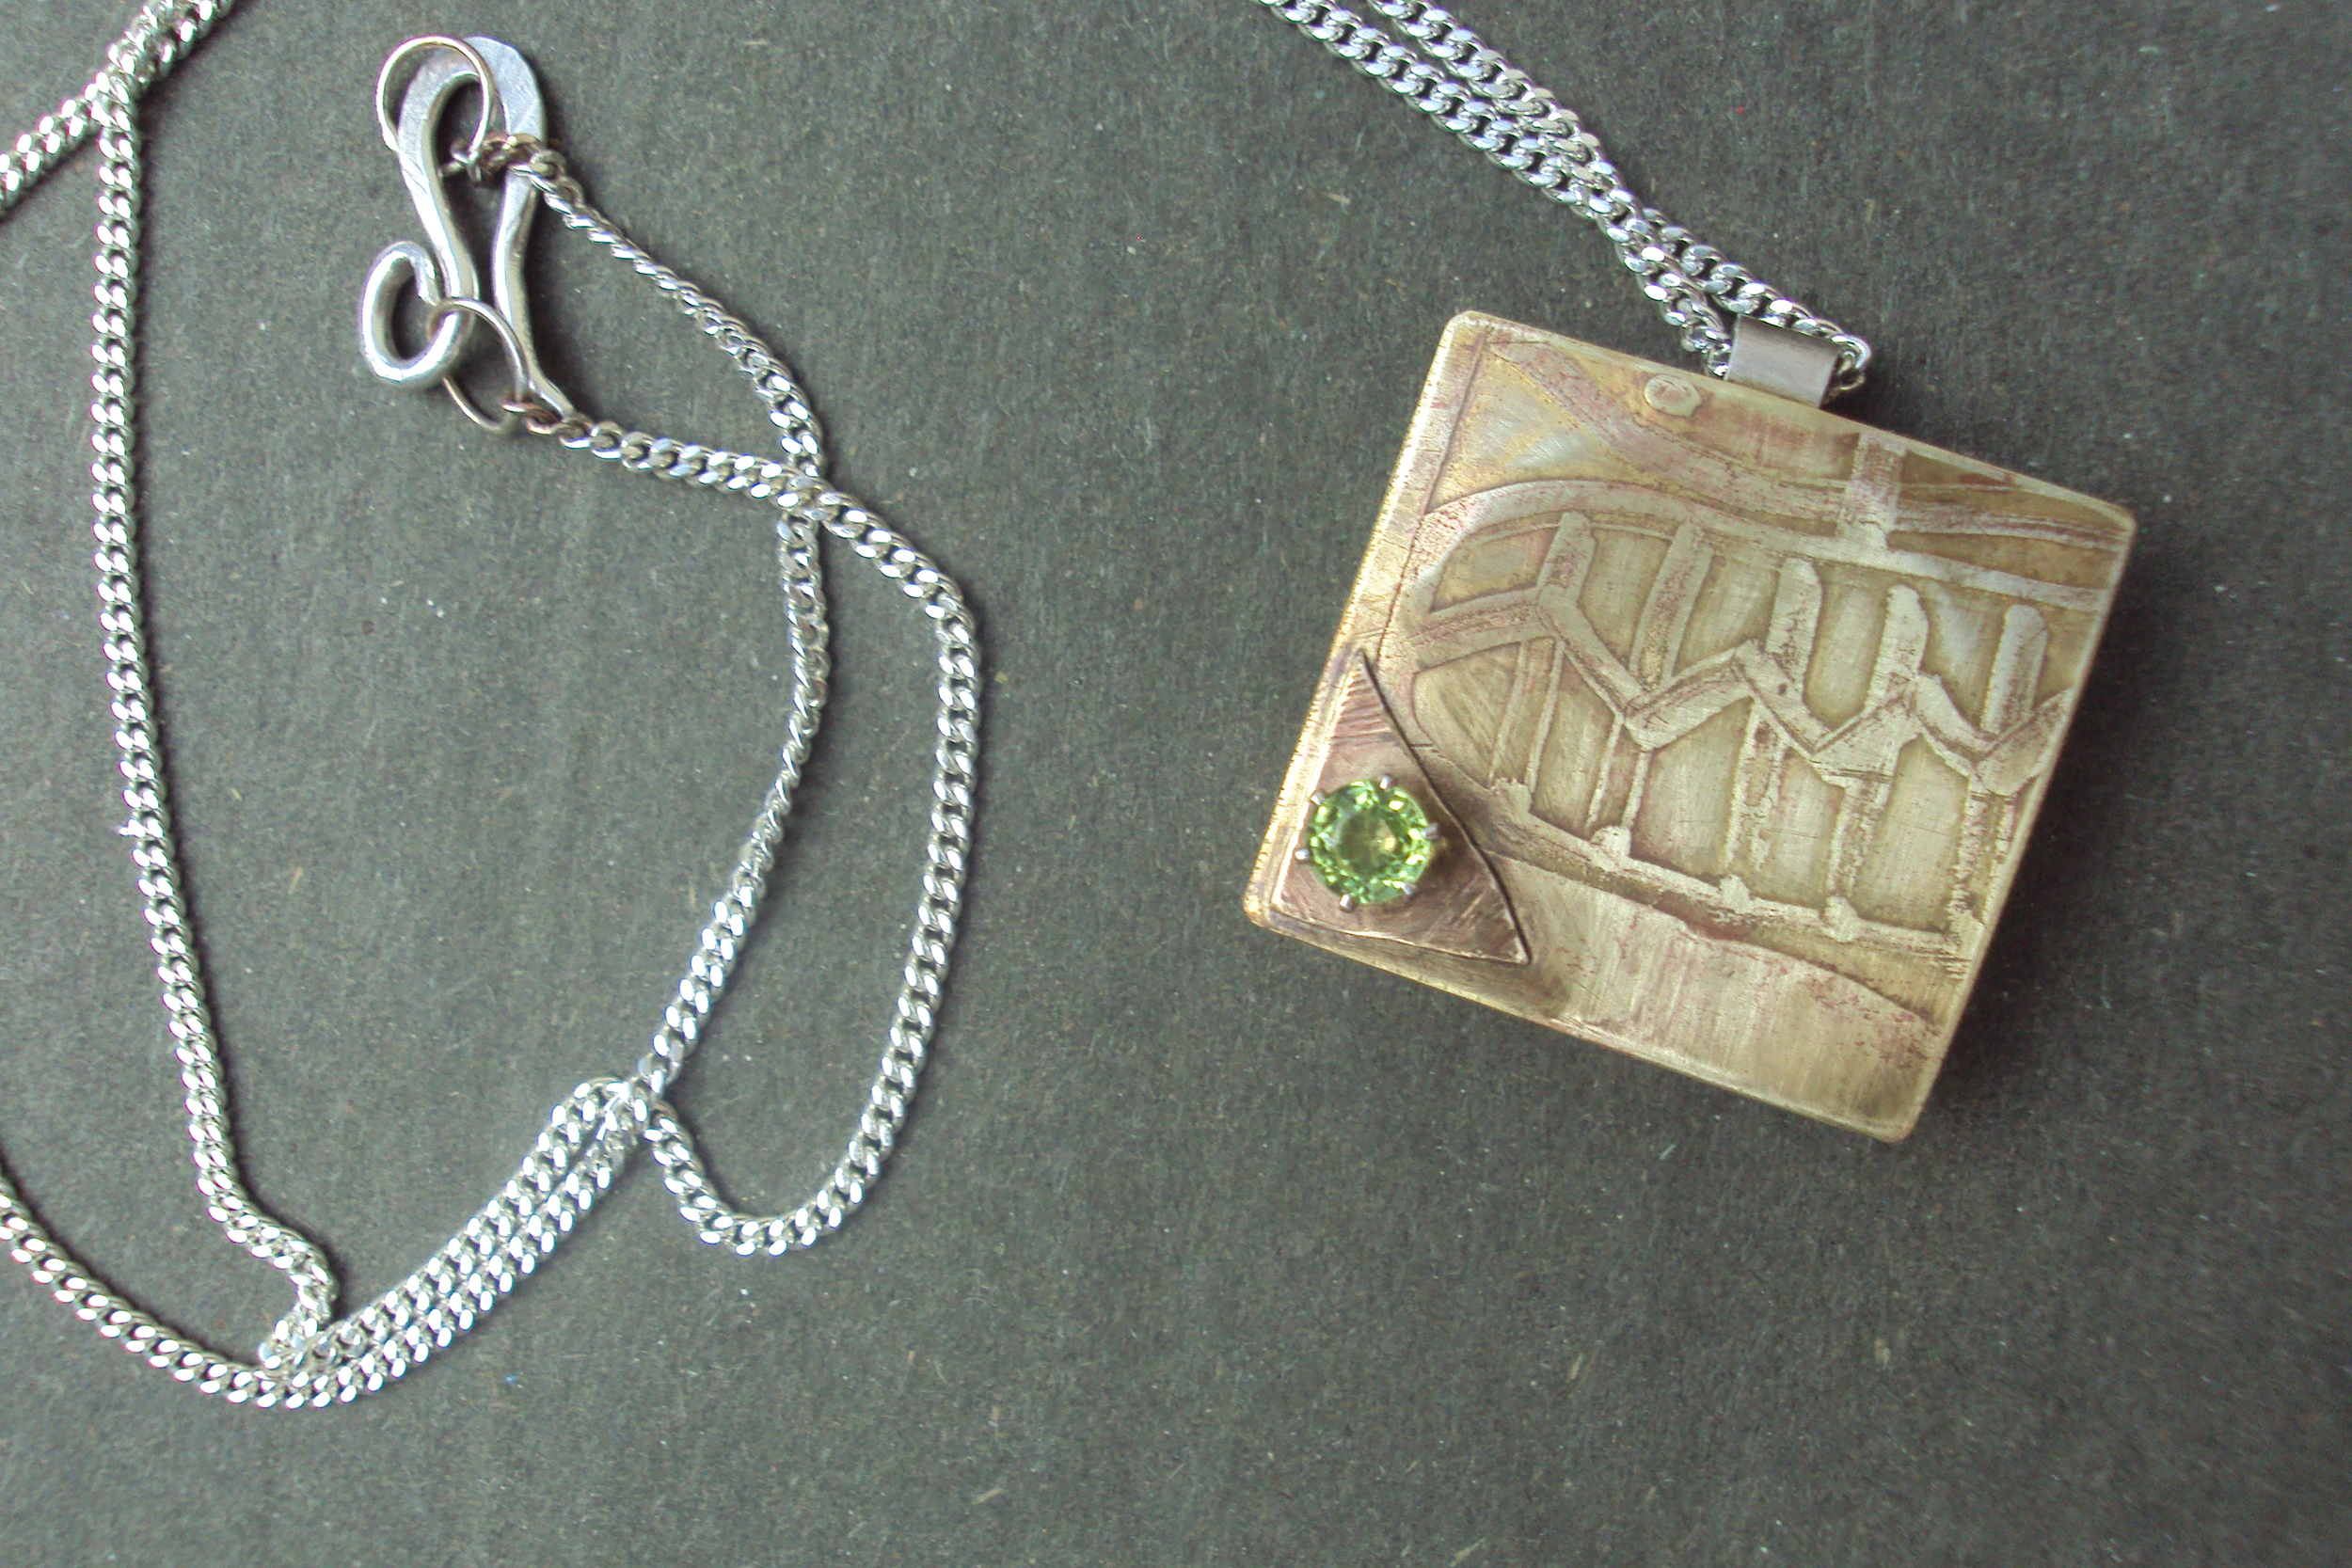 Pendant-  Etched brass box with 60pt. peridot steel chain ss clasp $196